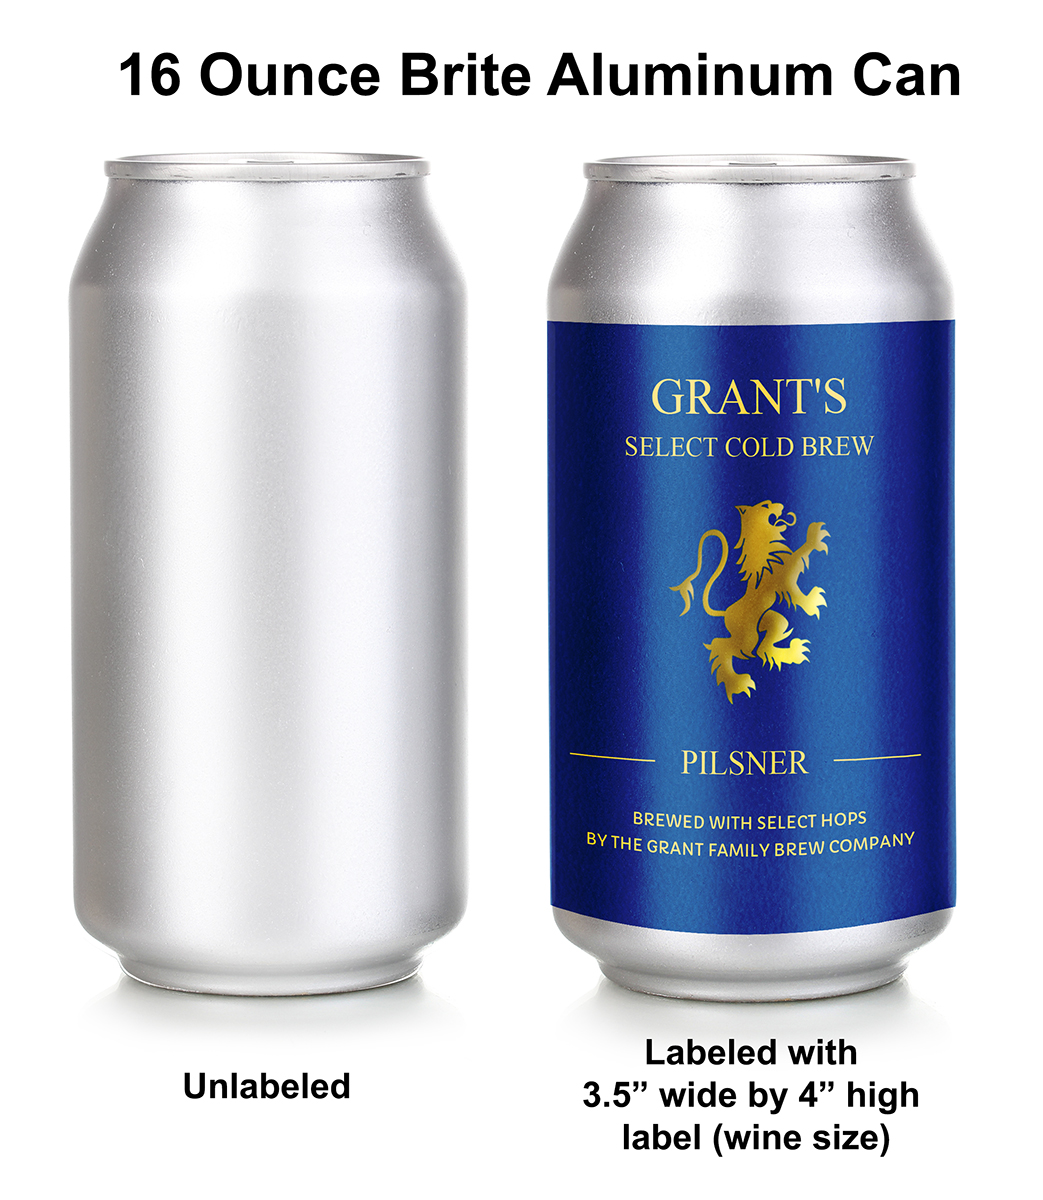 Beer can label template; personalize online. This 'wine' sized label fits 16 ounce aluminum cans.